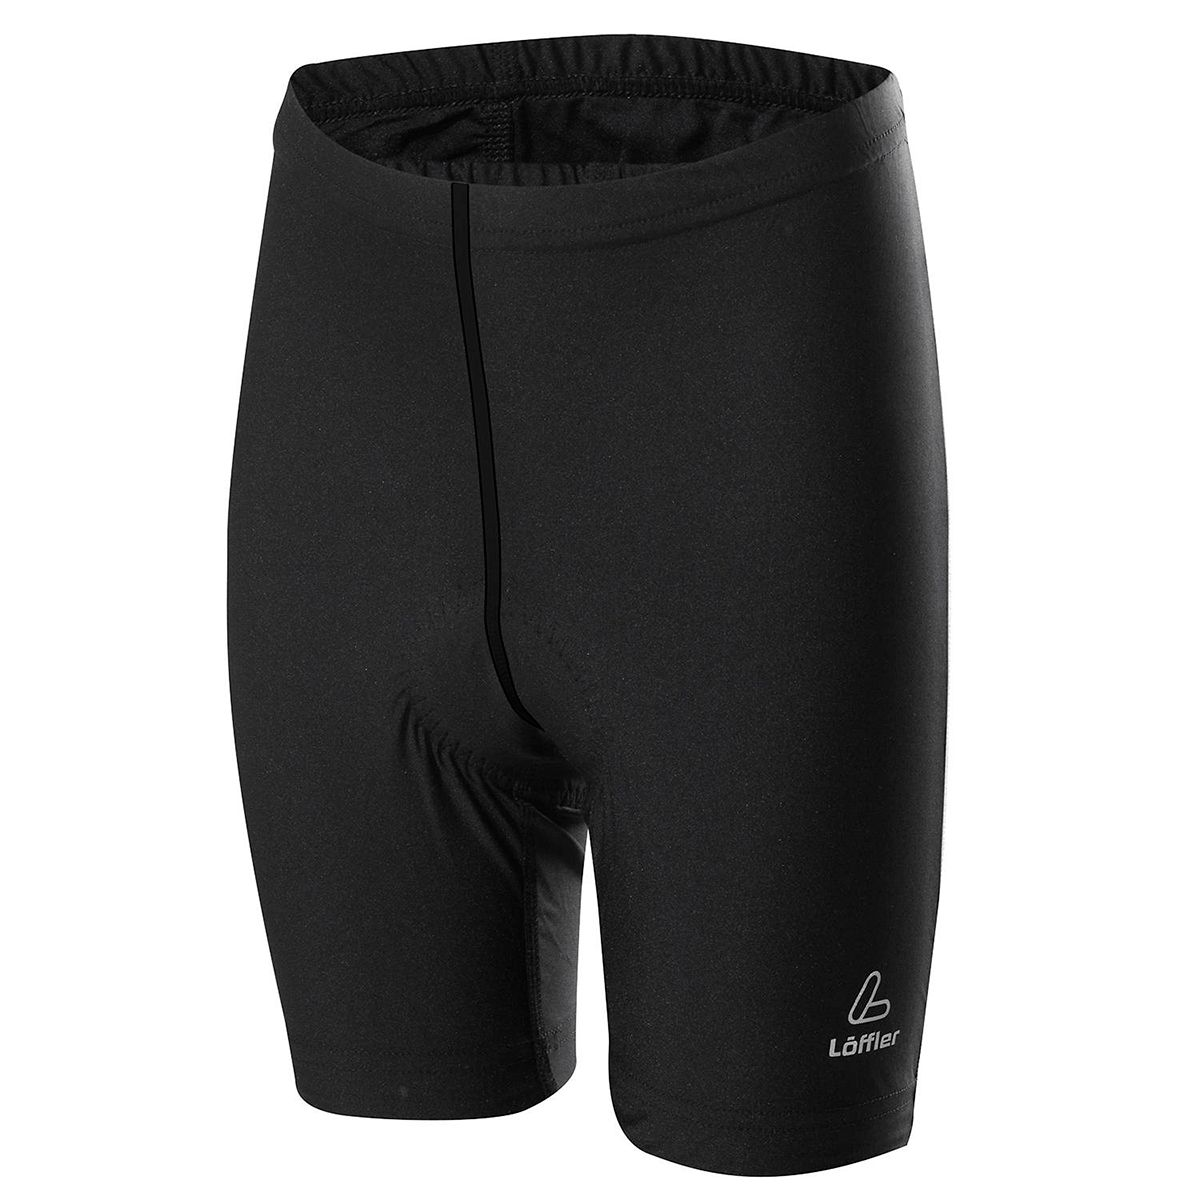 BIKE PANTS (KIDS) cycling shorts